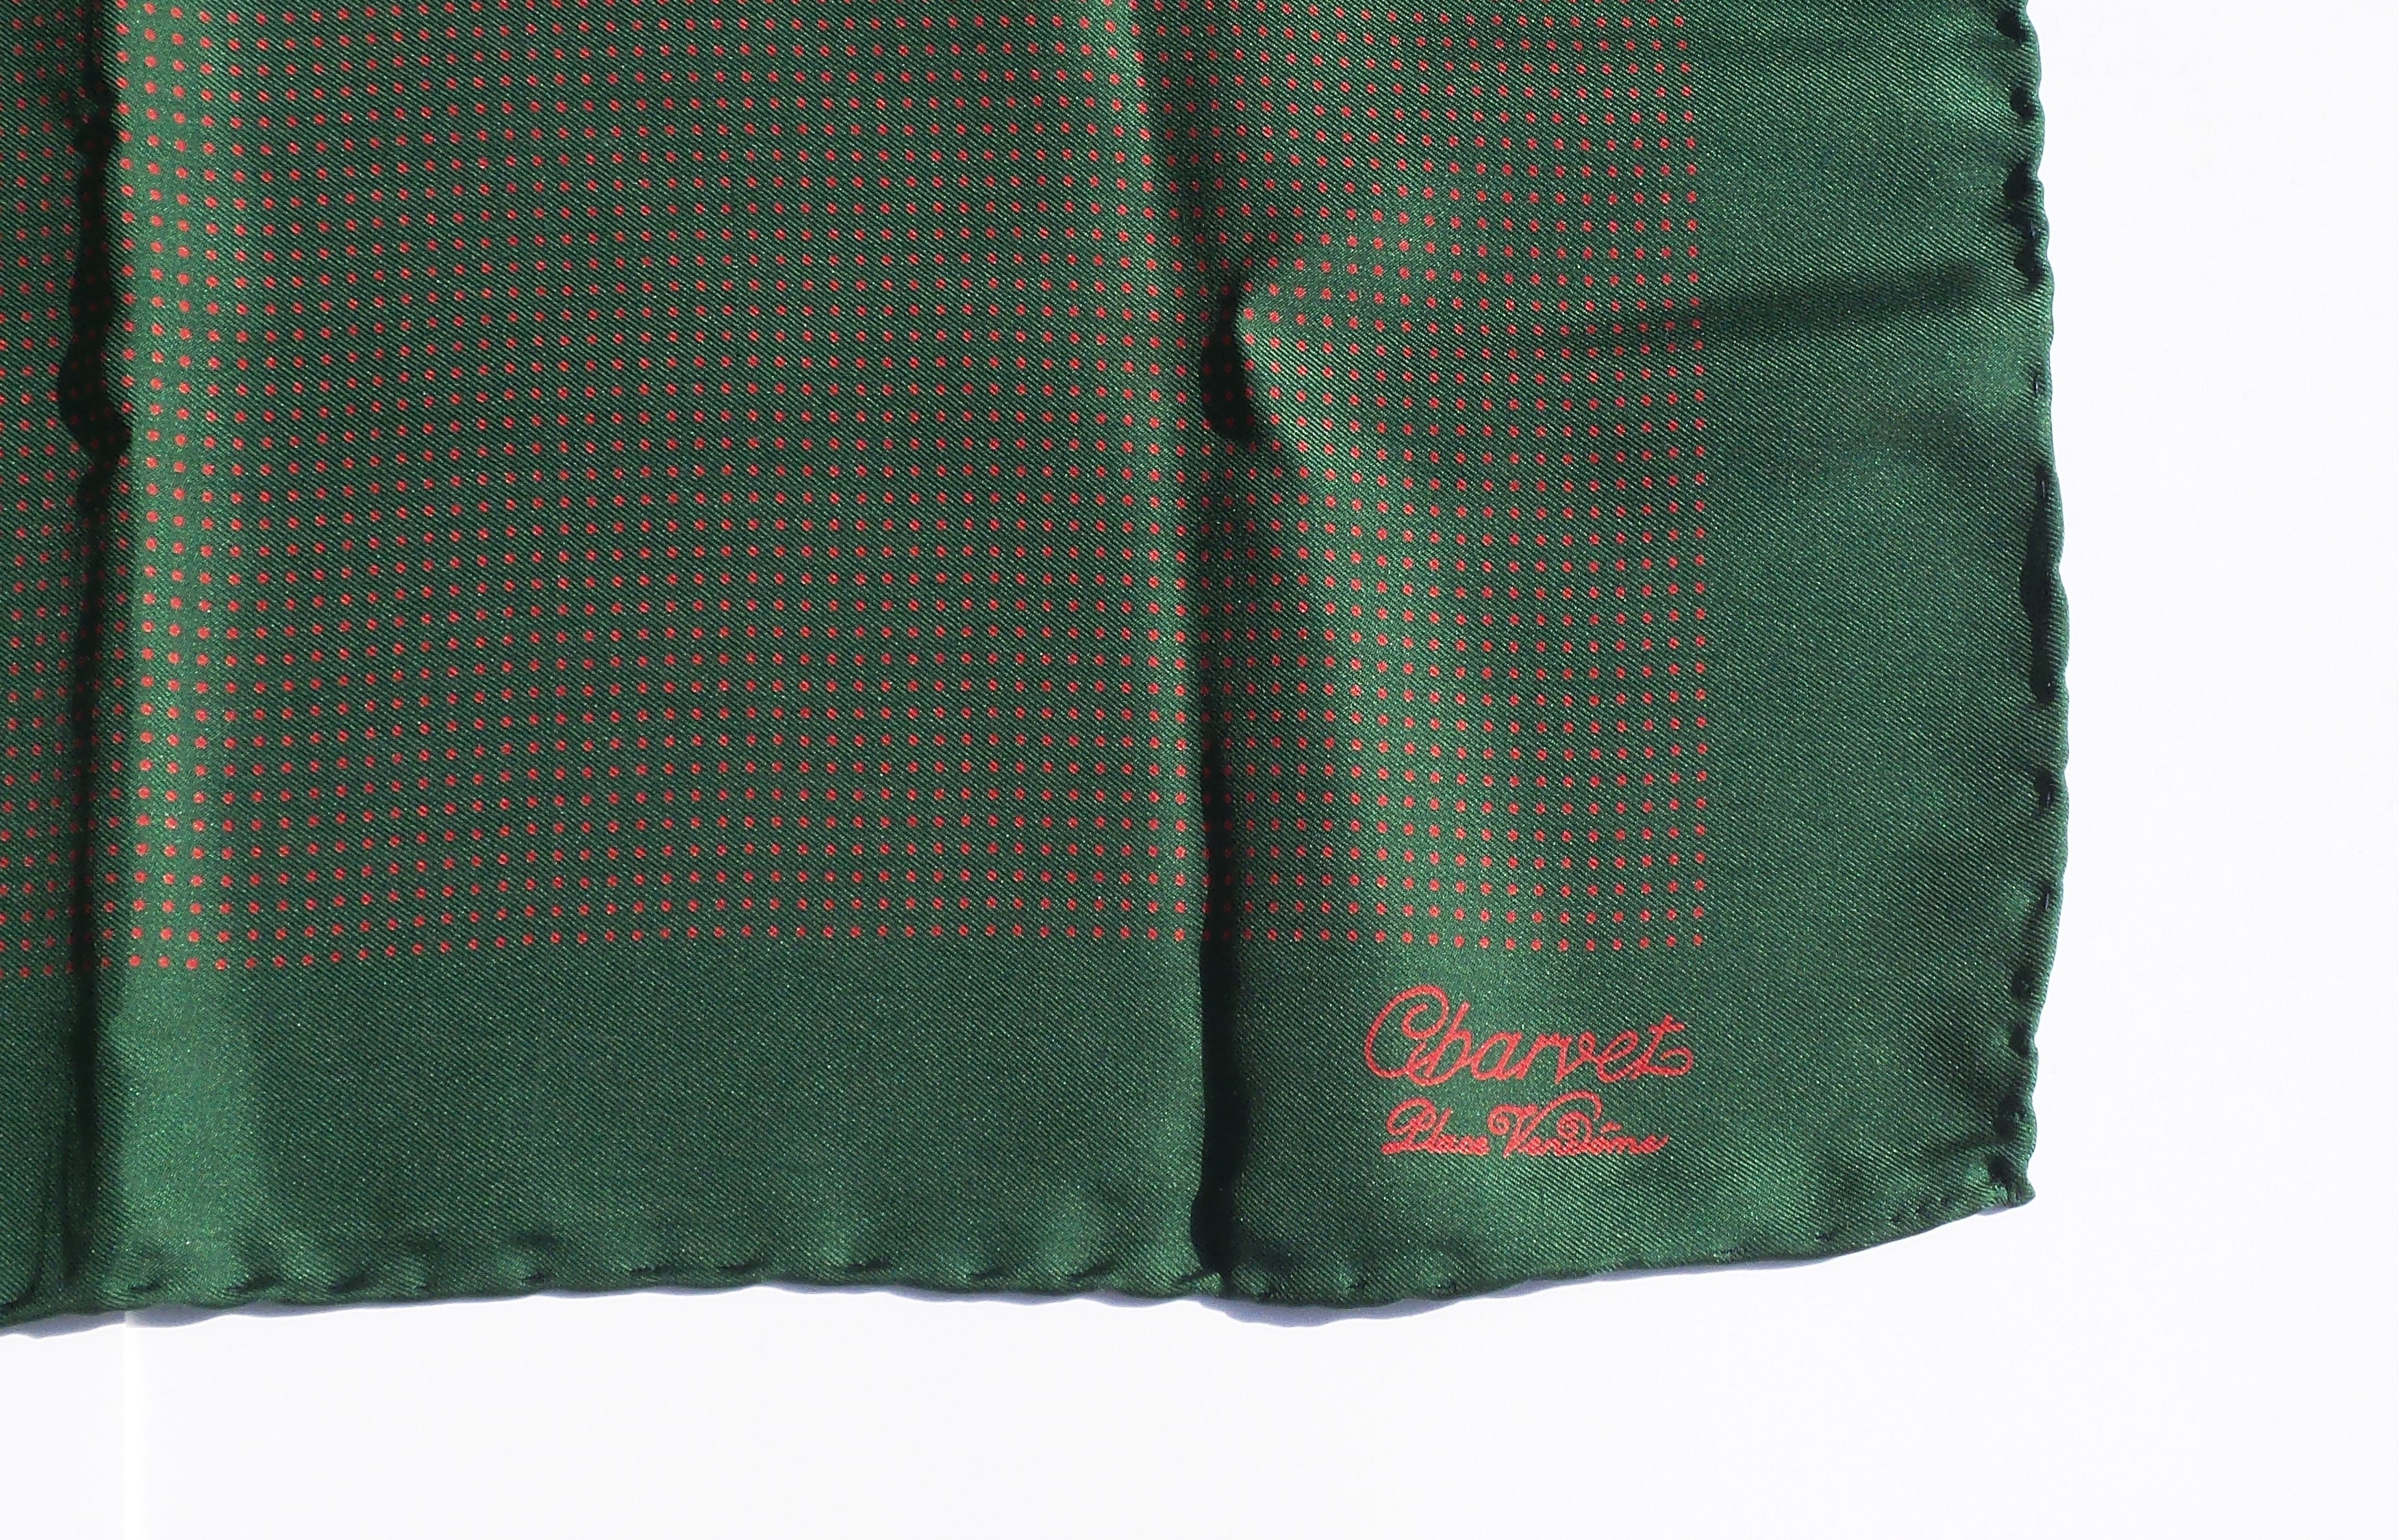 CHARVET Place Vendome Green Red Polka Dot Silk Twill Pocket Square Scarf 18.5""